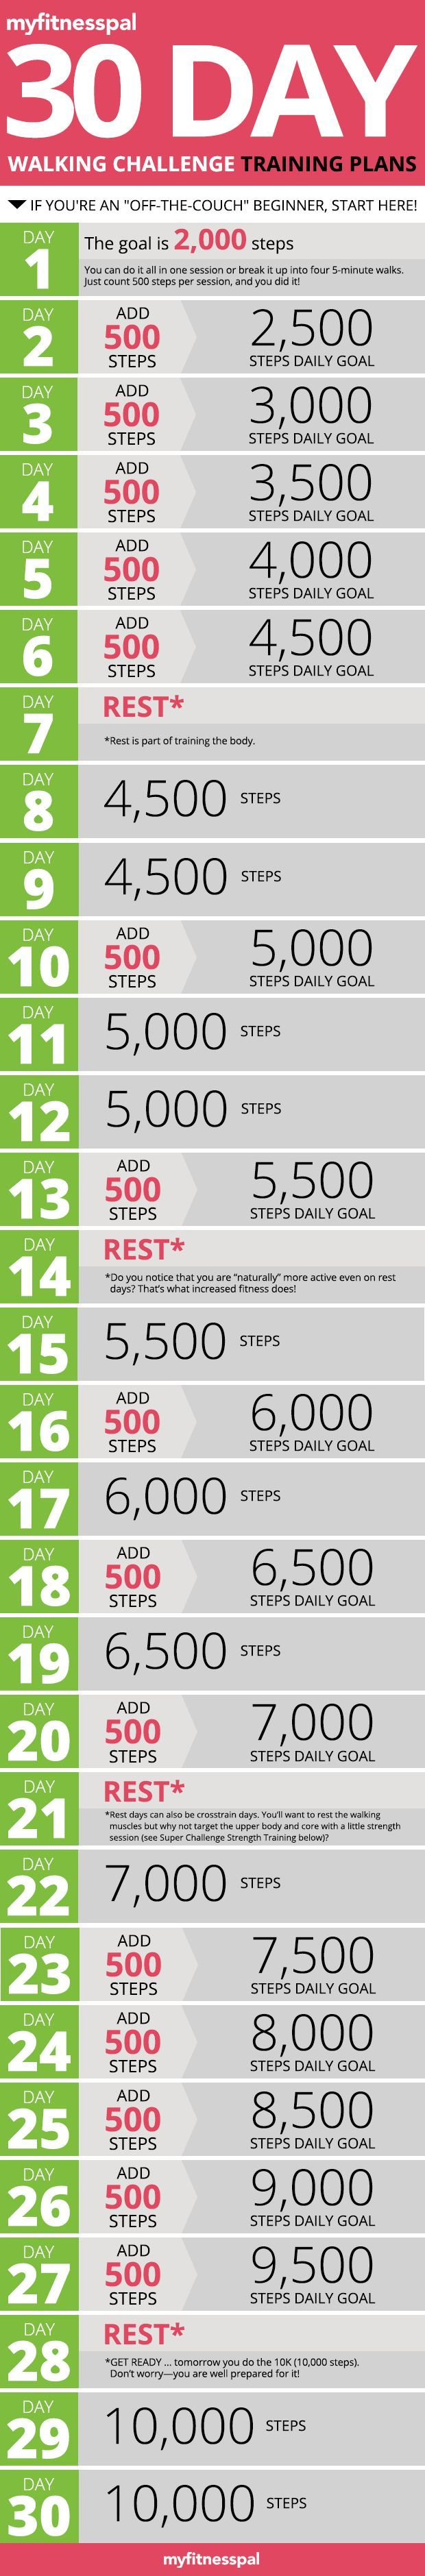 30 Day Walking Challenge from MyFitnessPal will get you to 10,000 Steps on your Fitbit in no time! (Step Exercises Losing Weight)